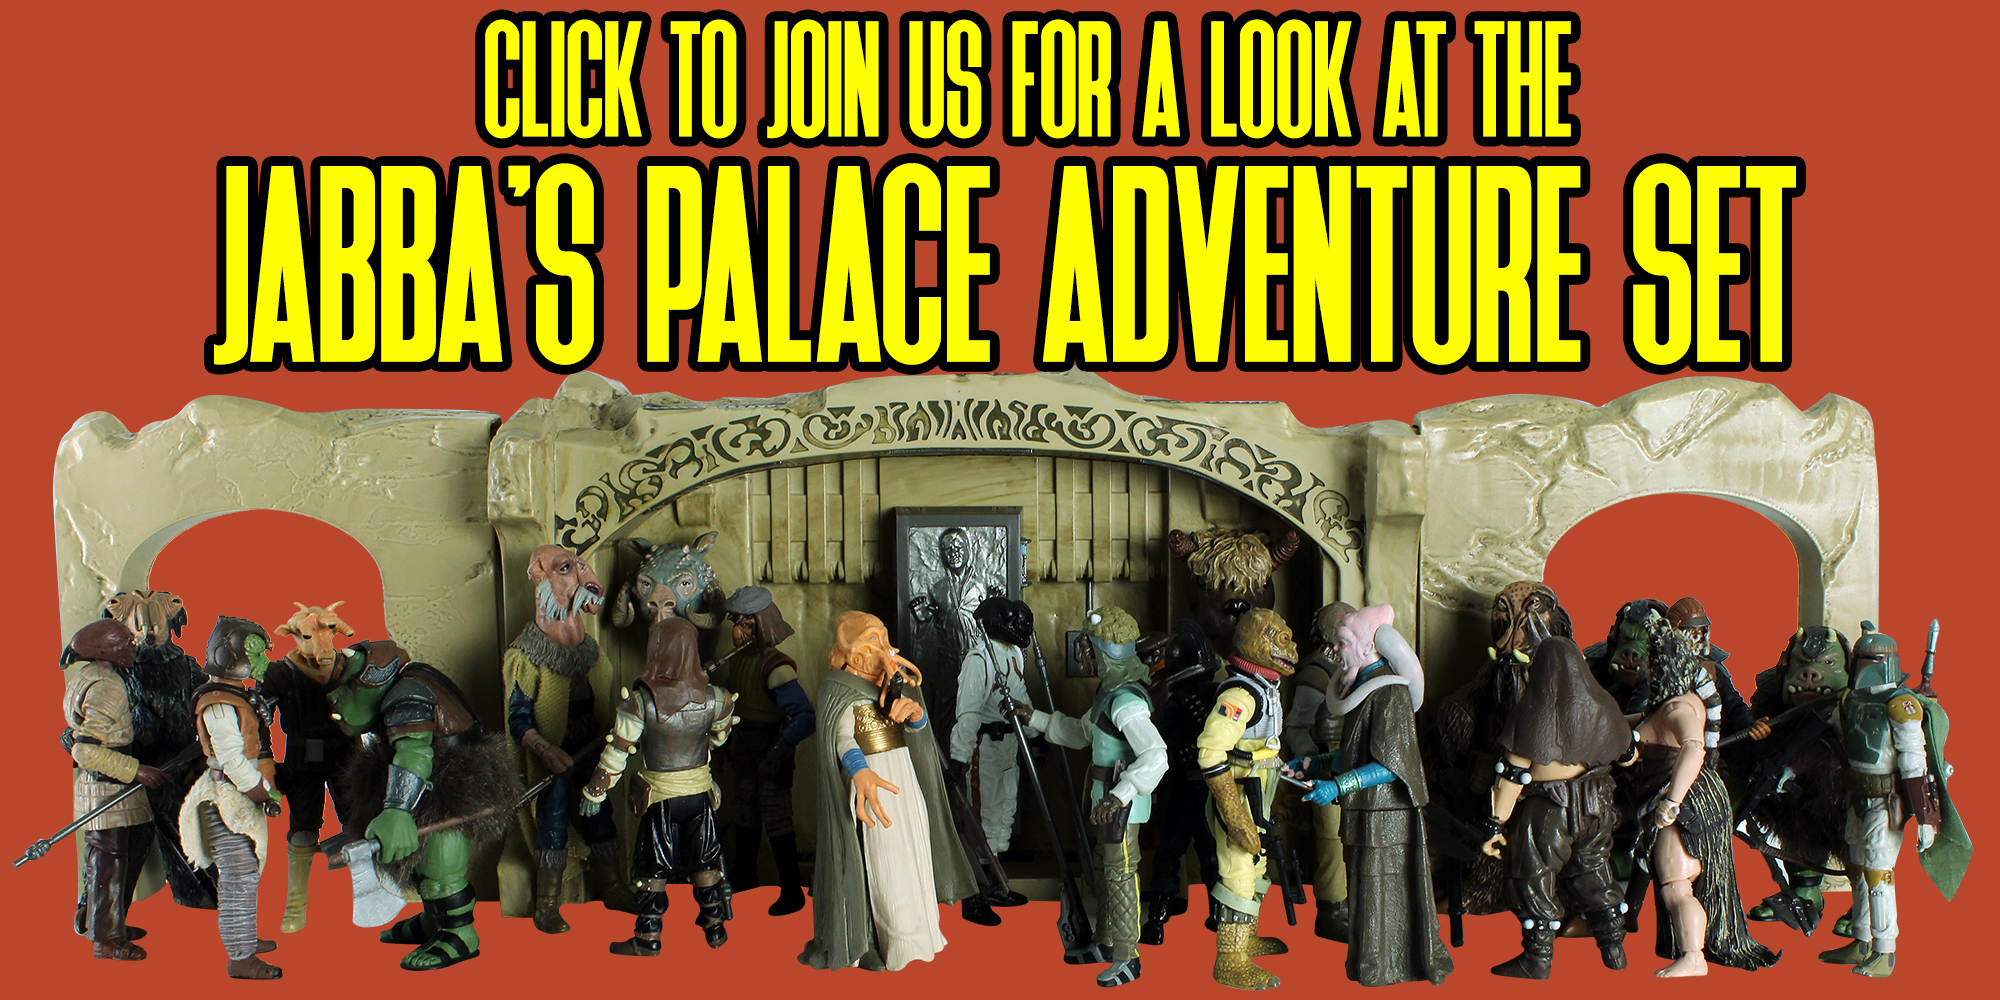 Jabba's Palace Adventure Set